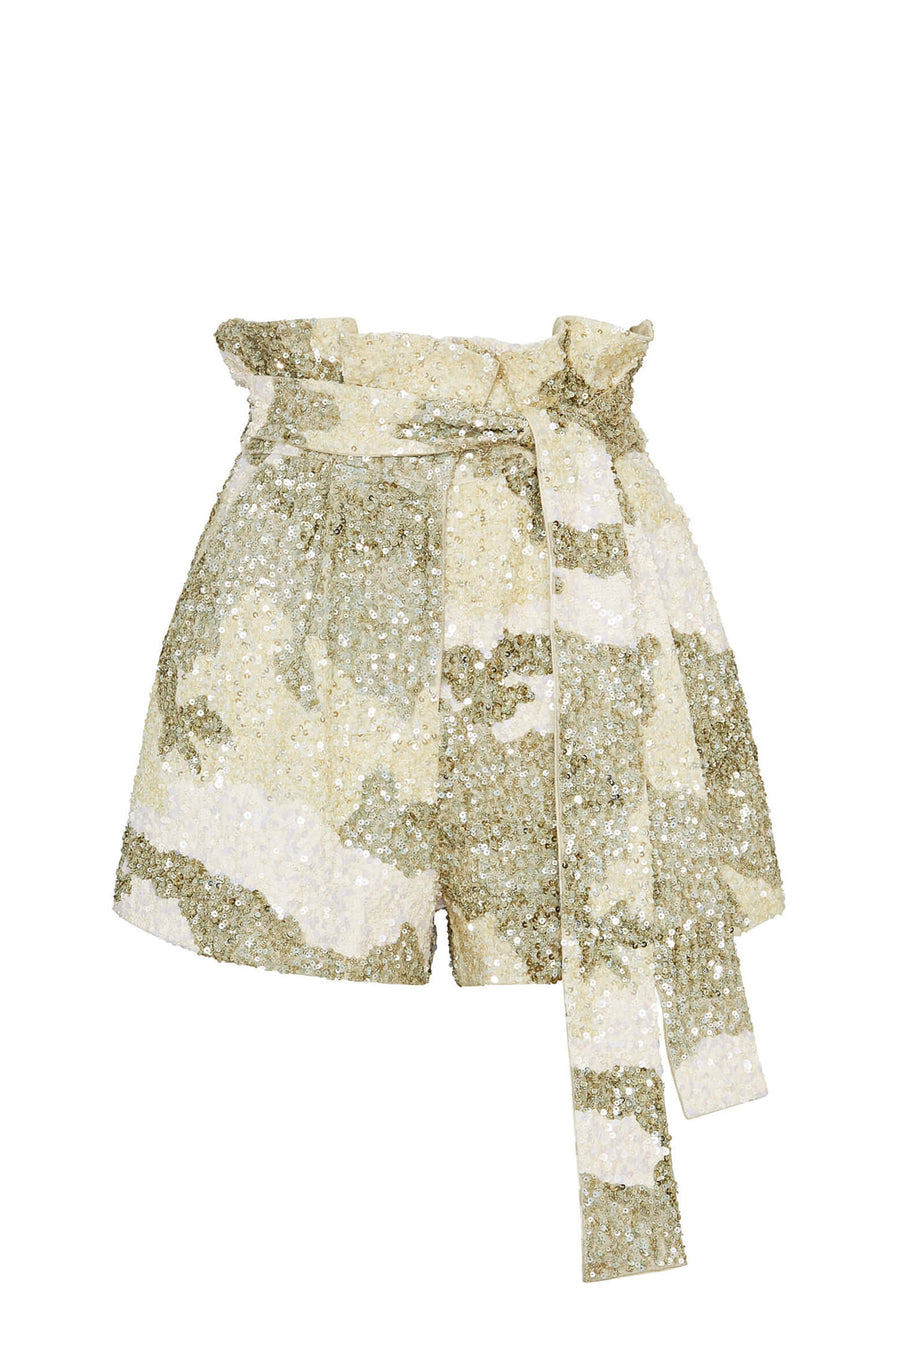 Retrofete Jo Shorts in Desert Camo from The New Trend